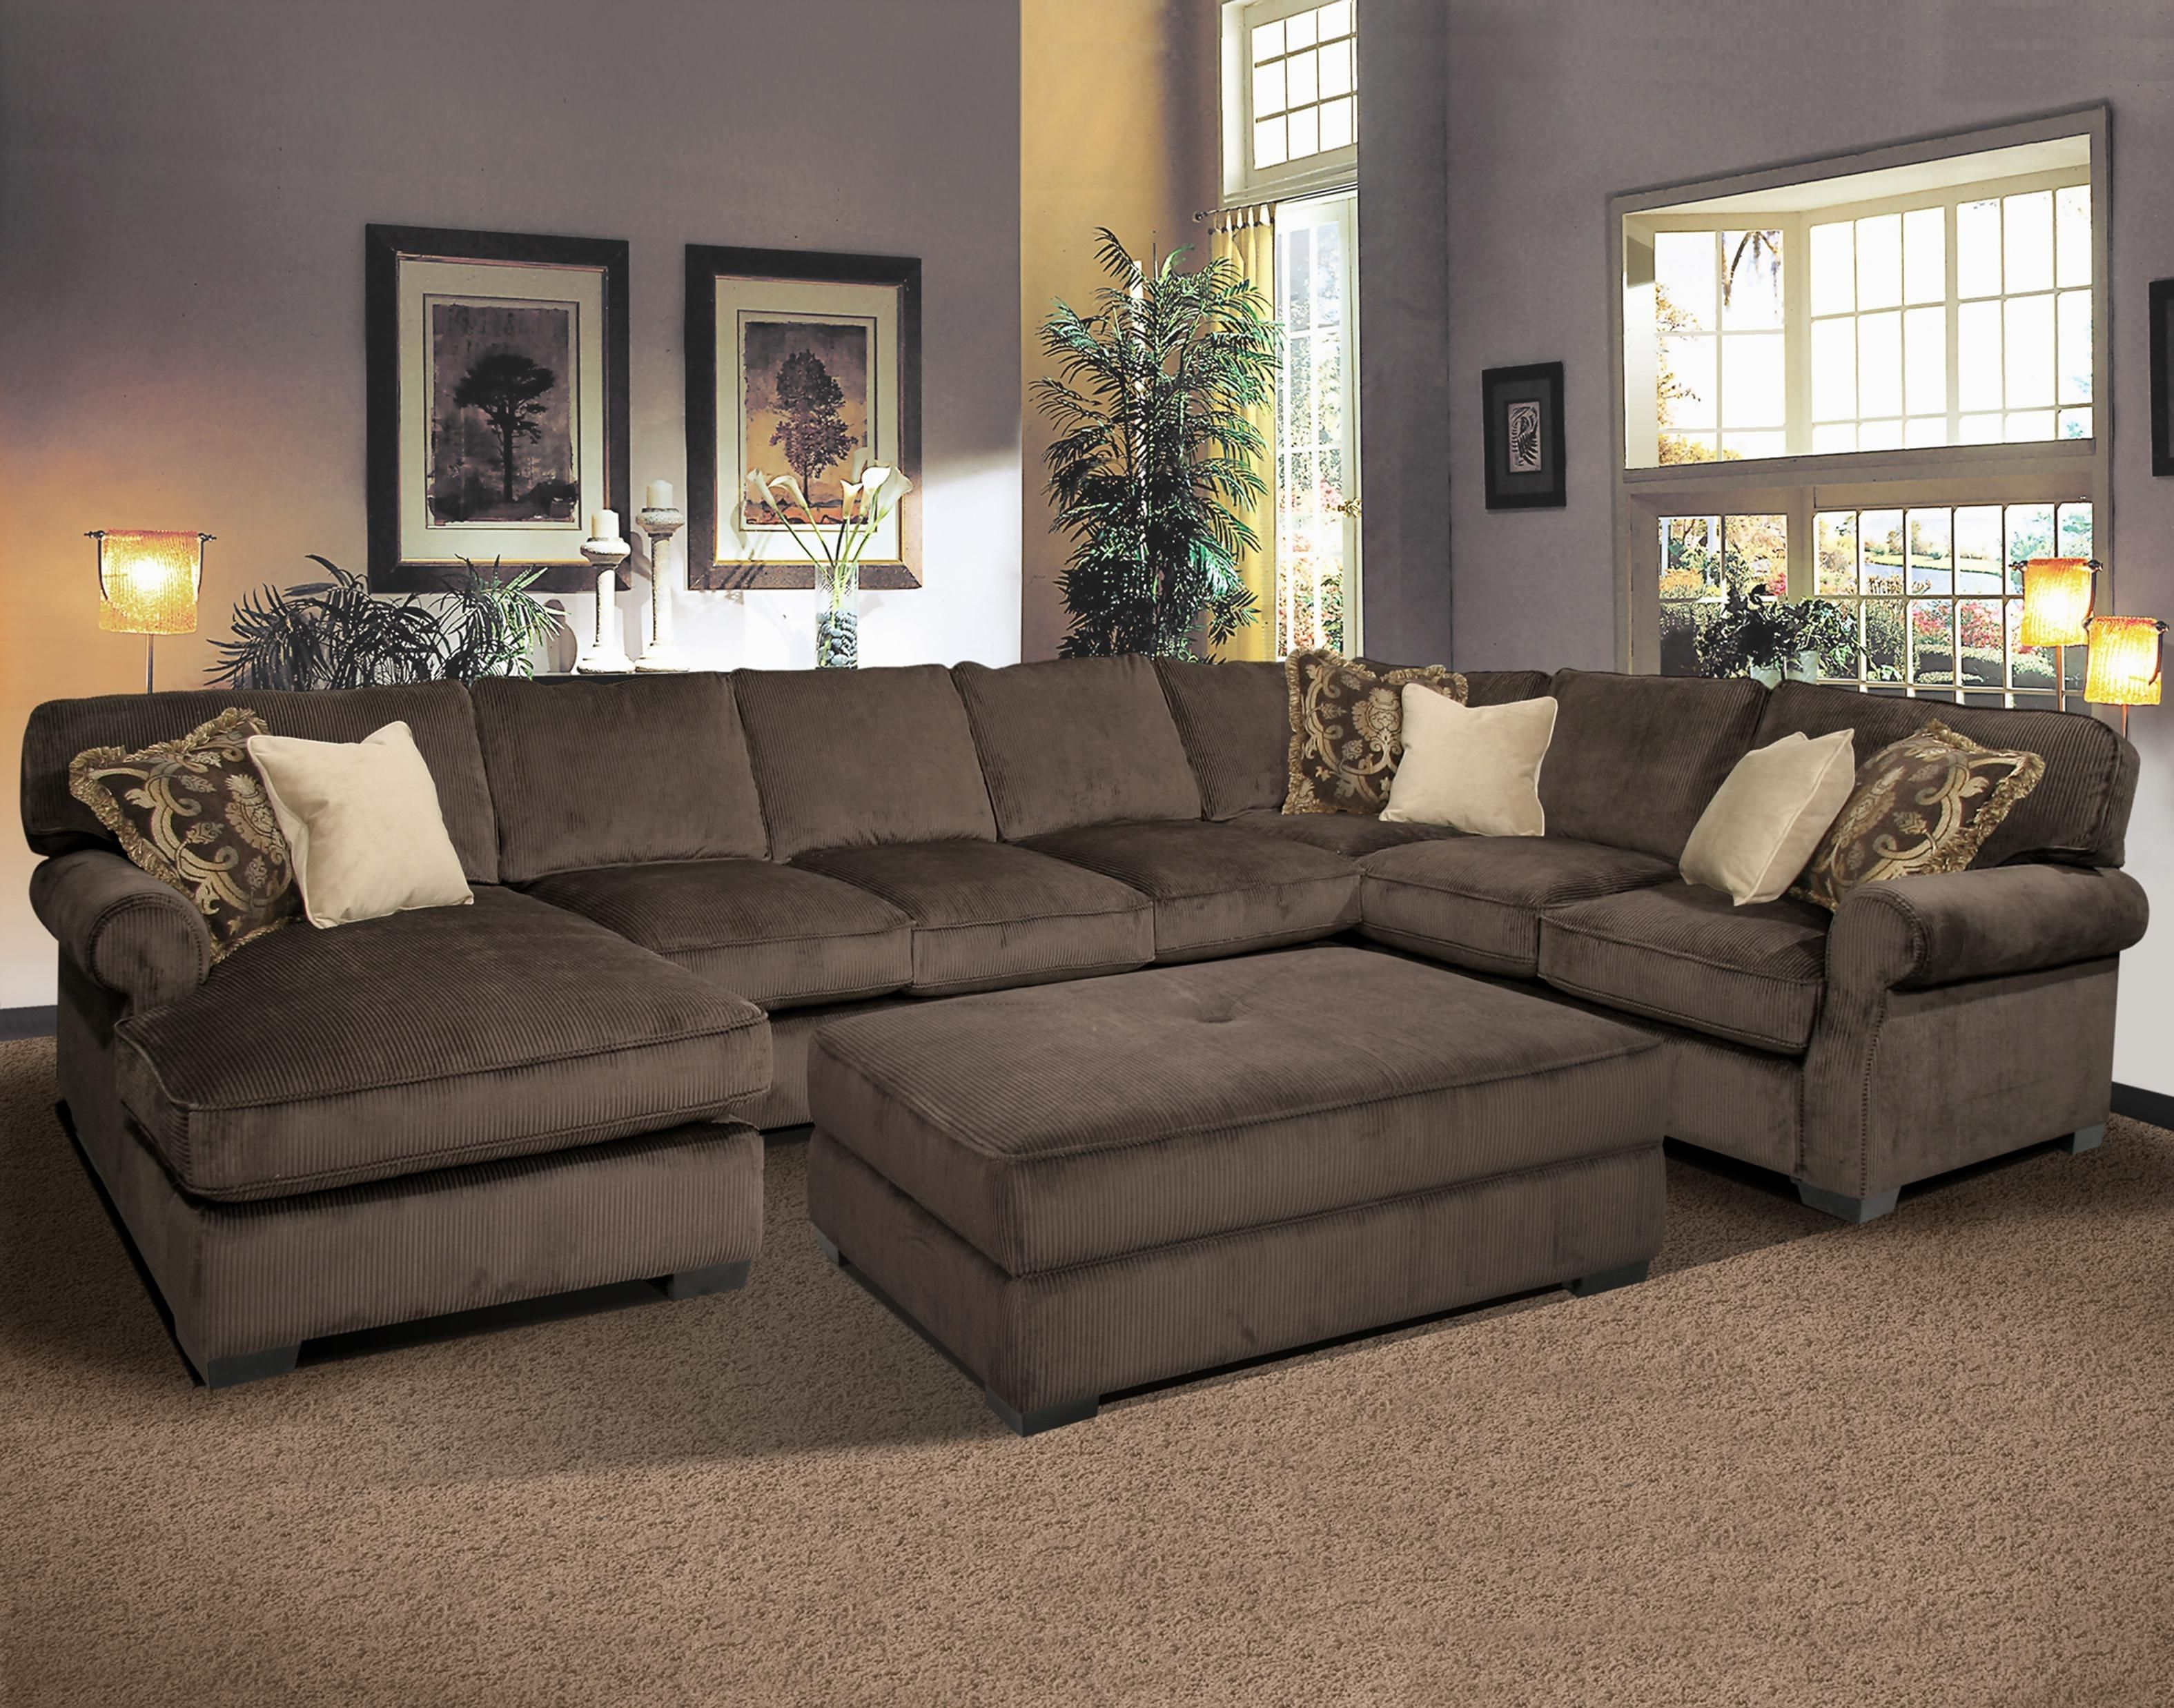 10 Ideas Of Grand Furniture Sectional Sofas Sofa Ideas Home Sectional Sofa With Chaise Furniture #sectional #couch #in #living #room